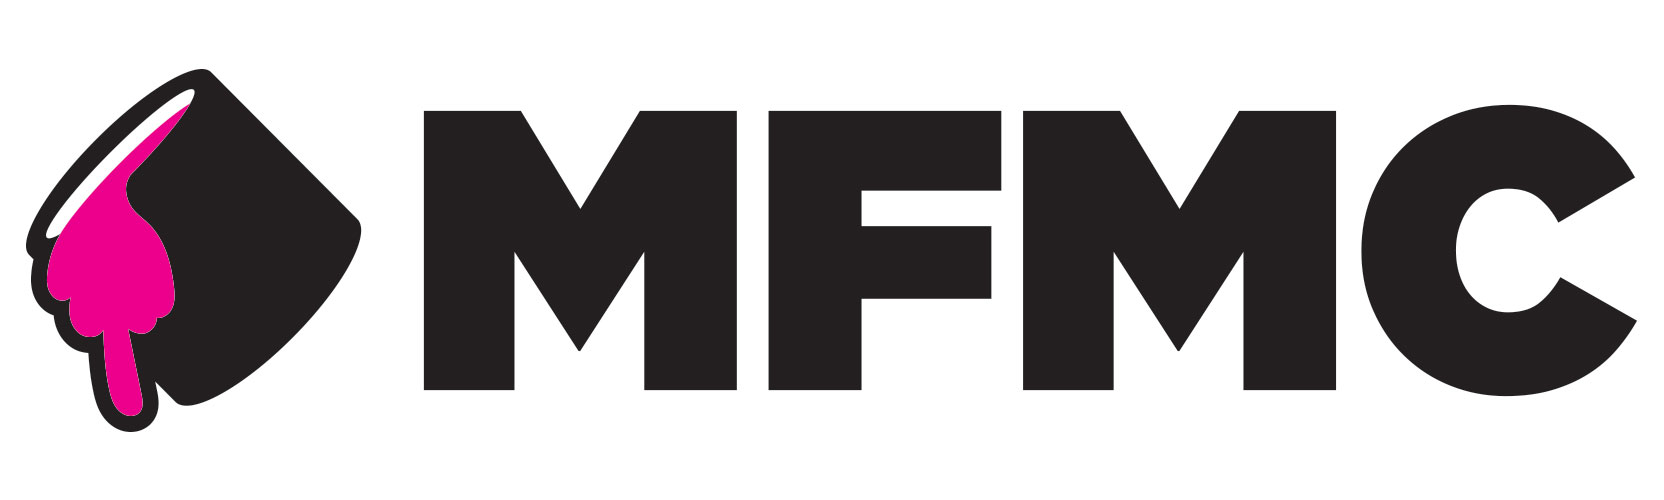 MFMC Paint - logomark and wordmark